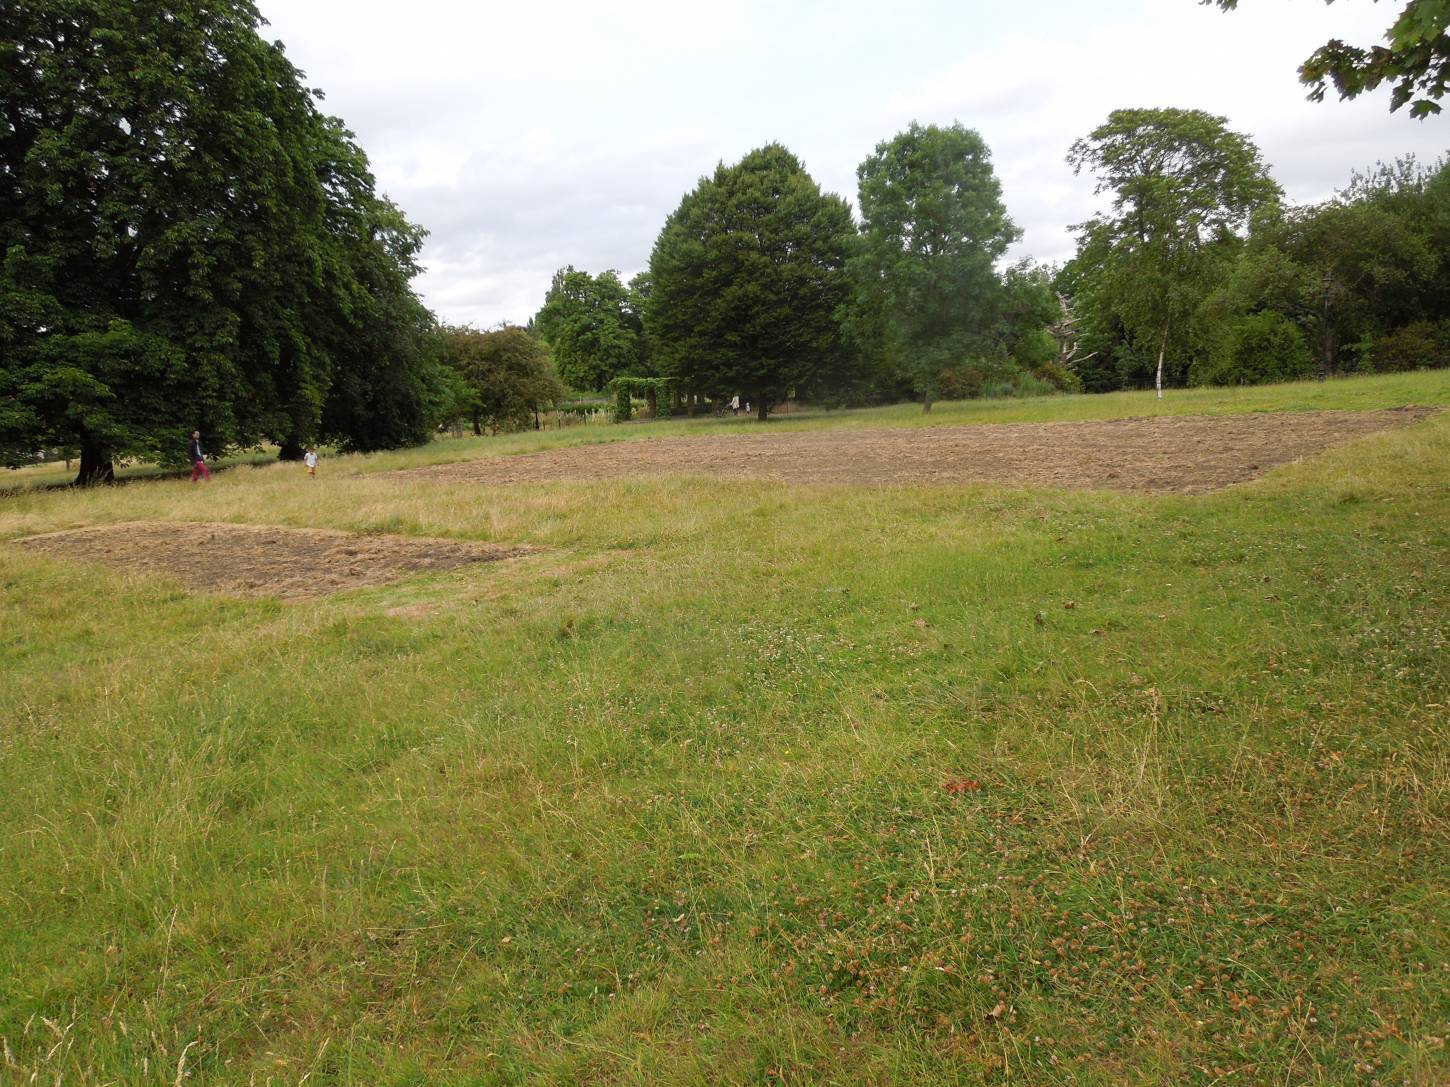 Ruskin Park wheat site rotvated - 4:57pm&nbsp;12<sup>th</sup>&nbsp;Jul.&nbsp;'15